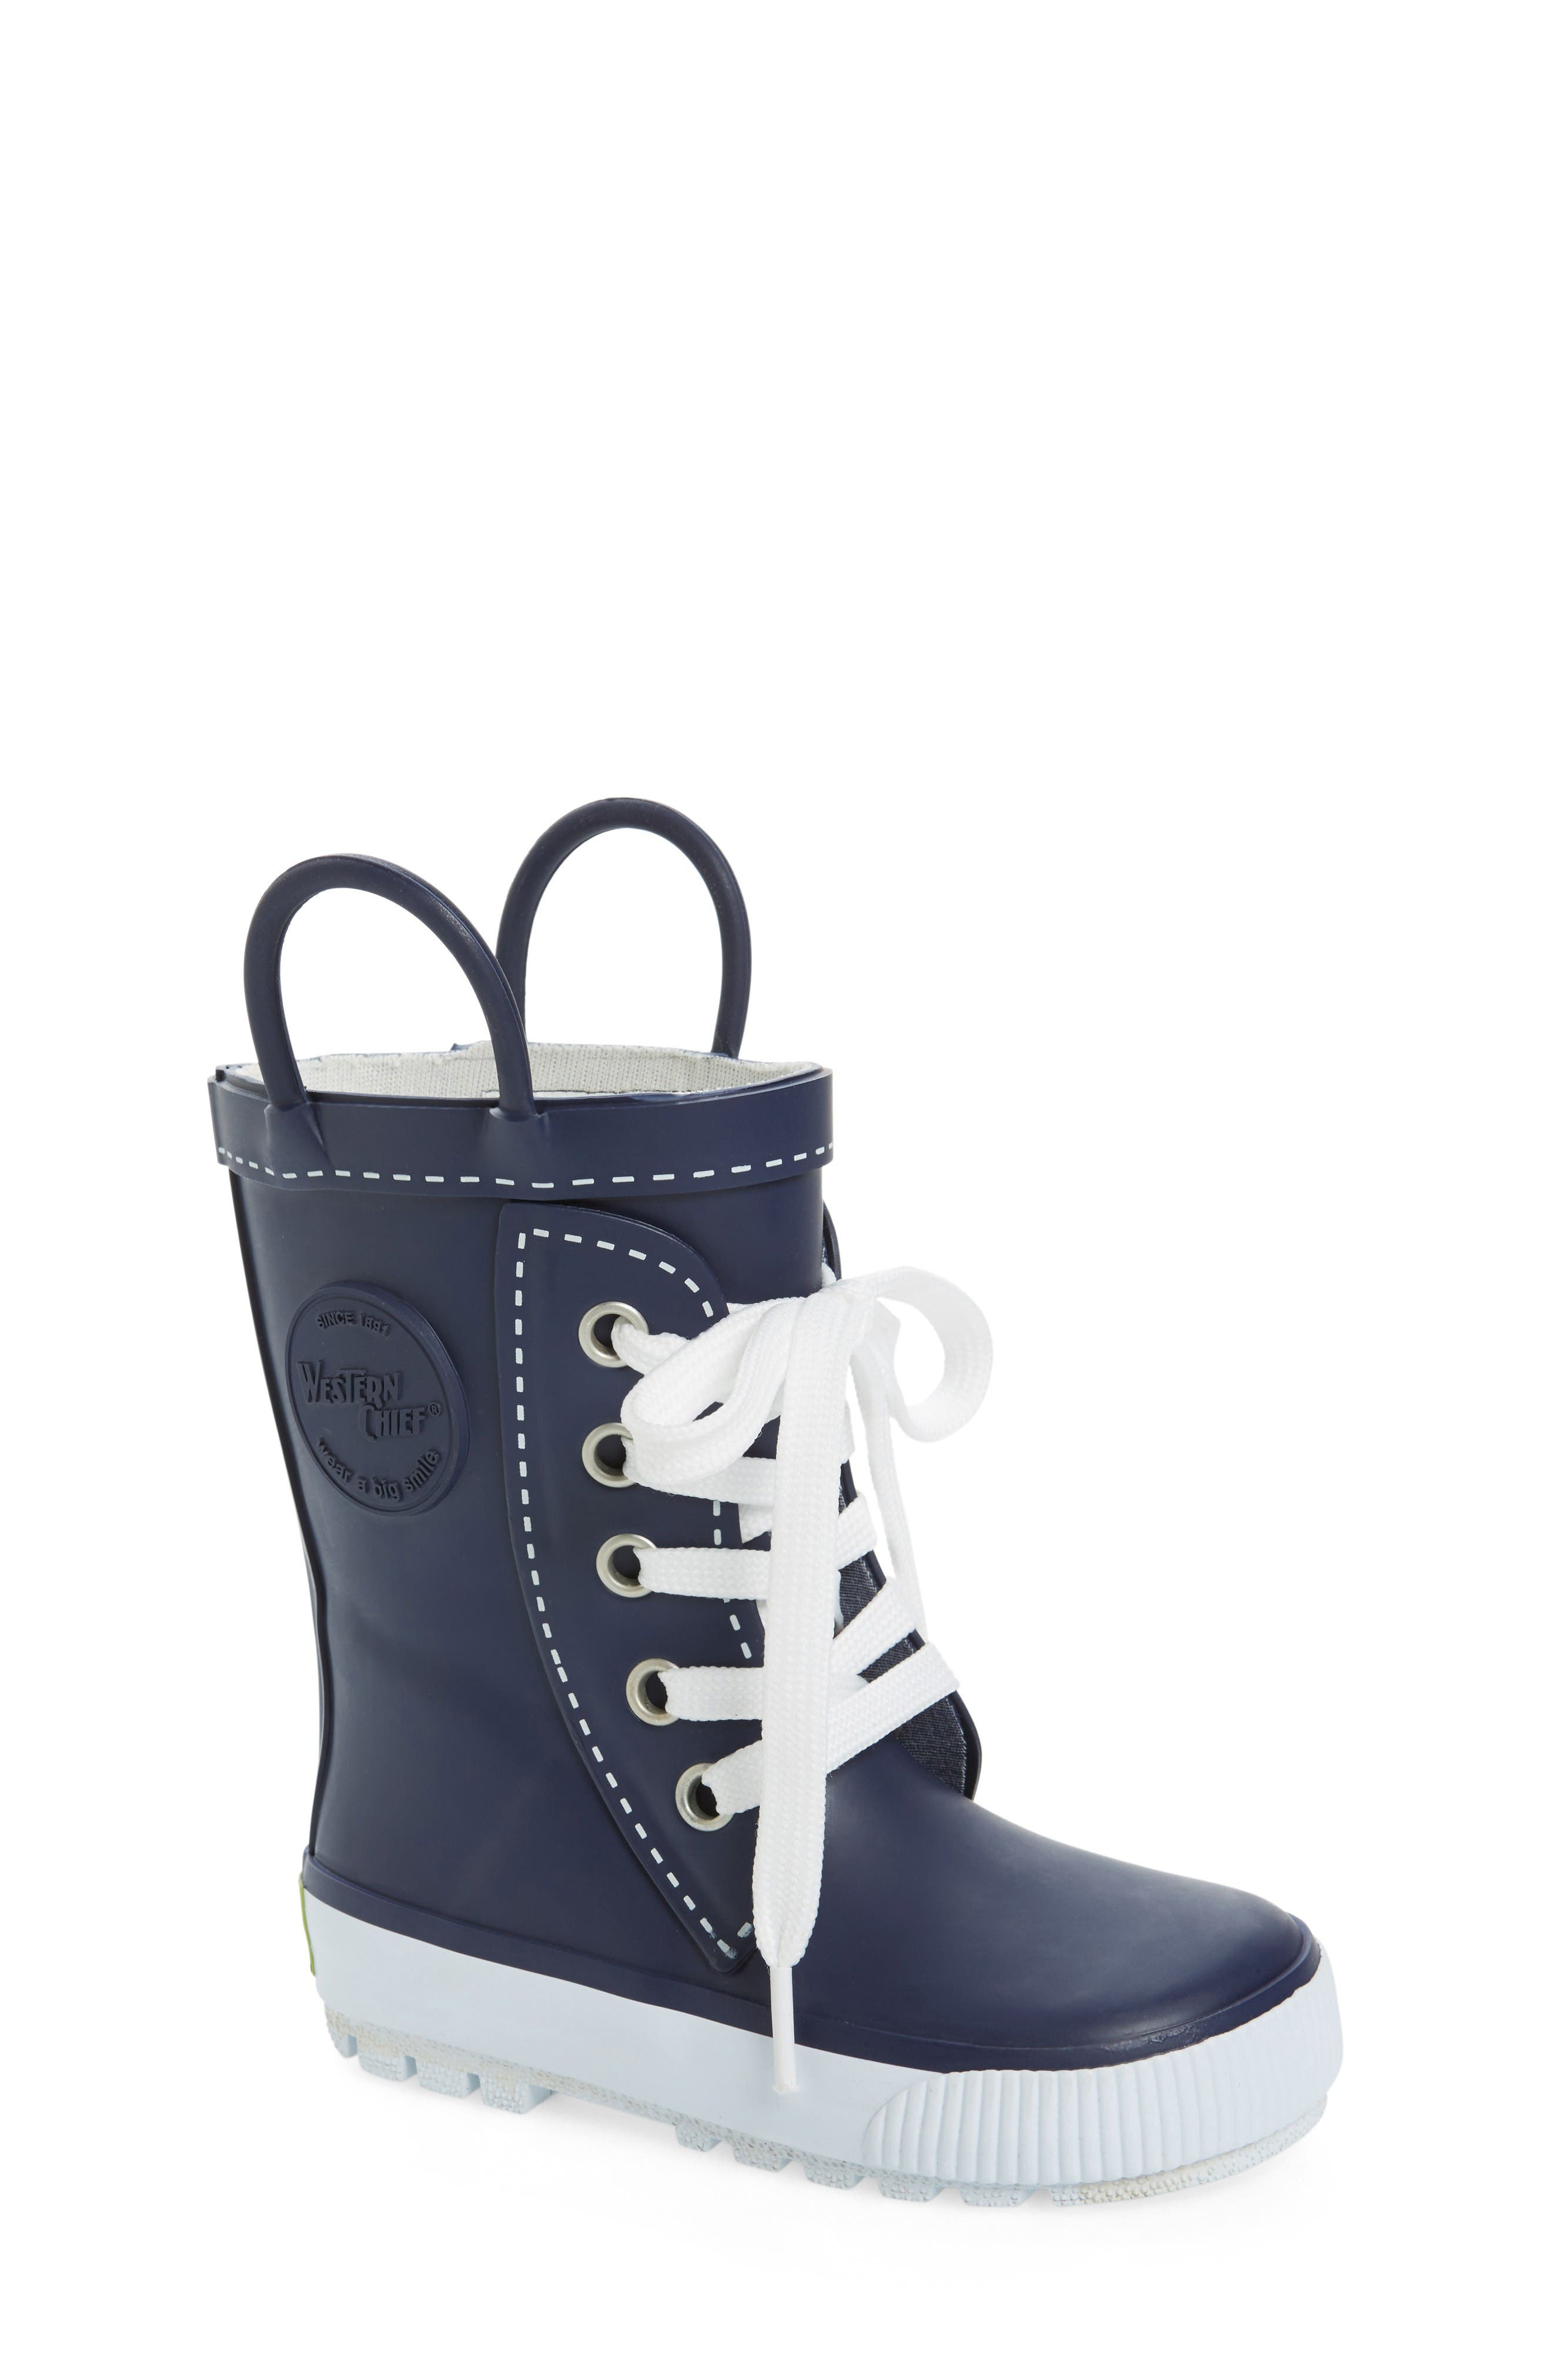 Waterproof Sneaker Rain Boot,                             Main thumbnail 1, color,                             Navy